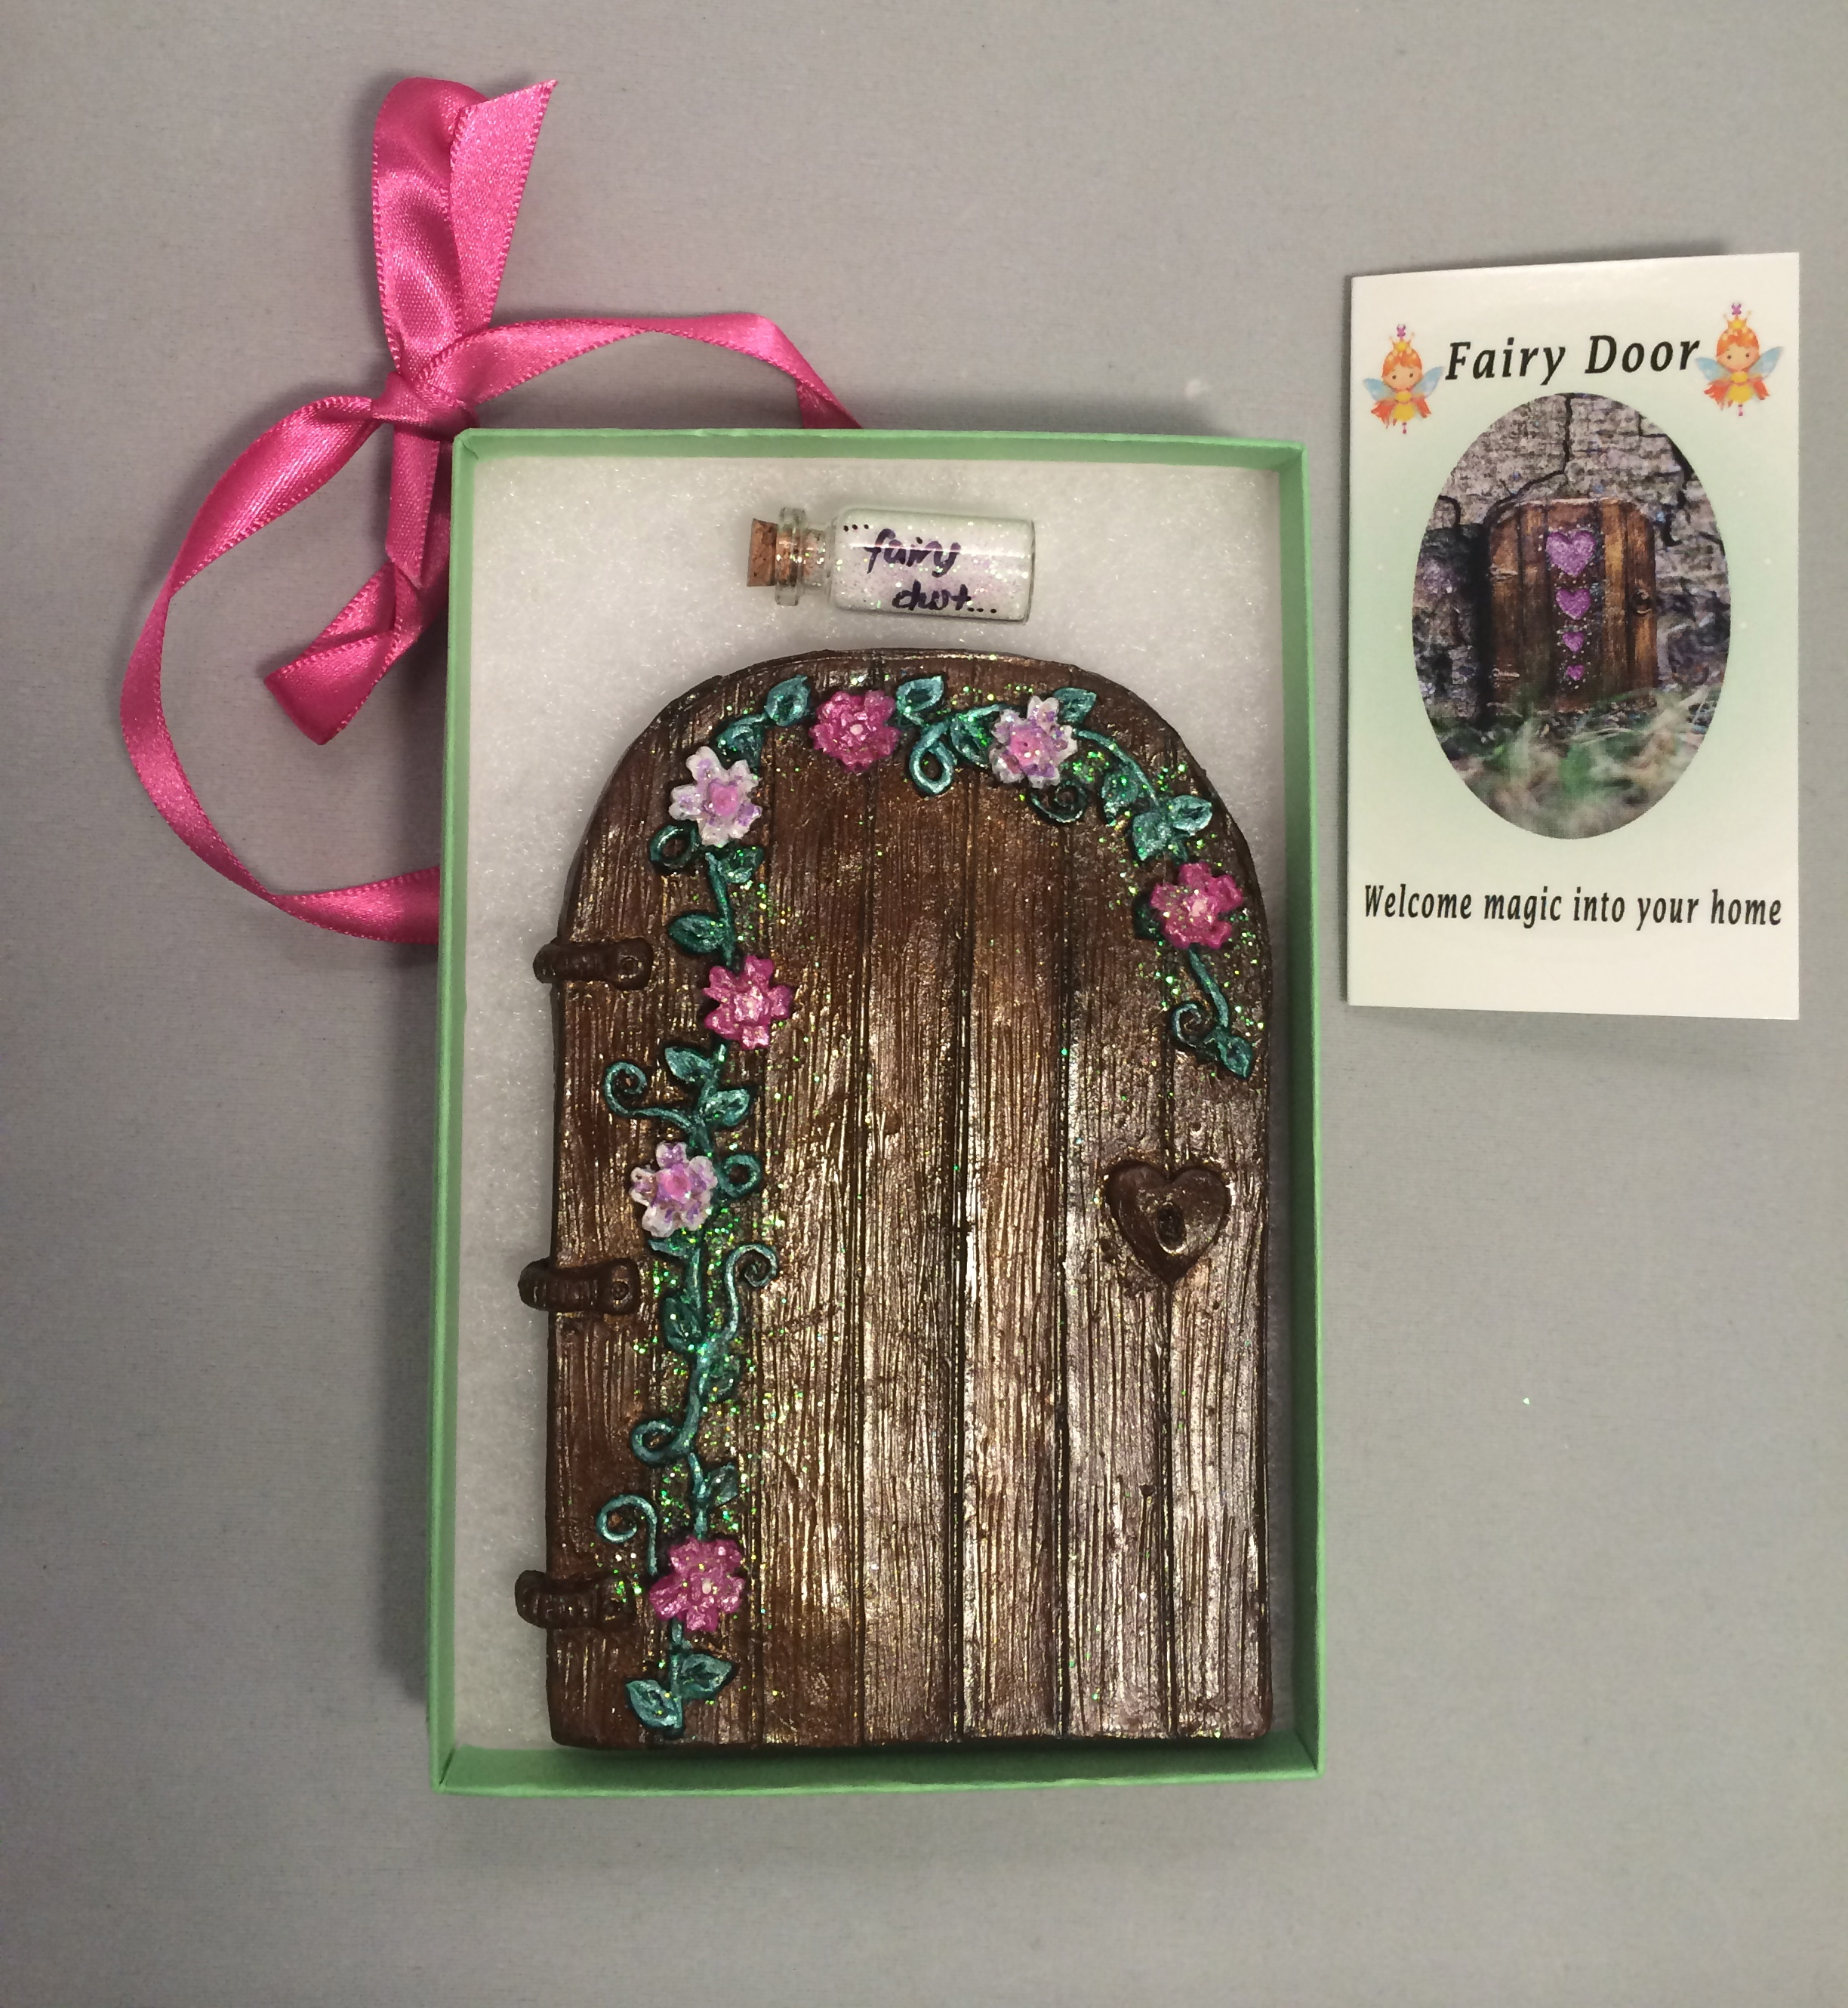 The best selling flower fairy door in pink and white from studio 7t7